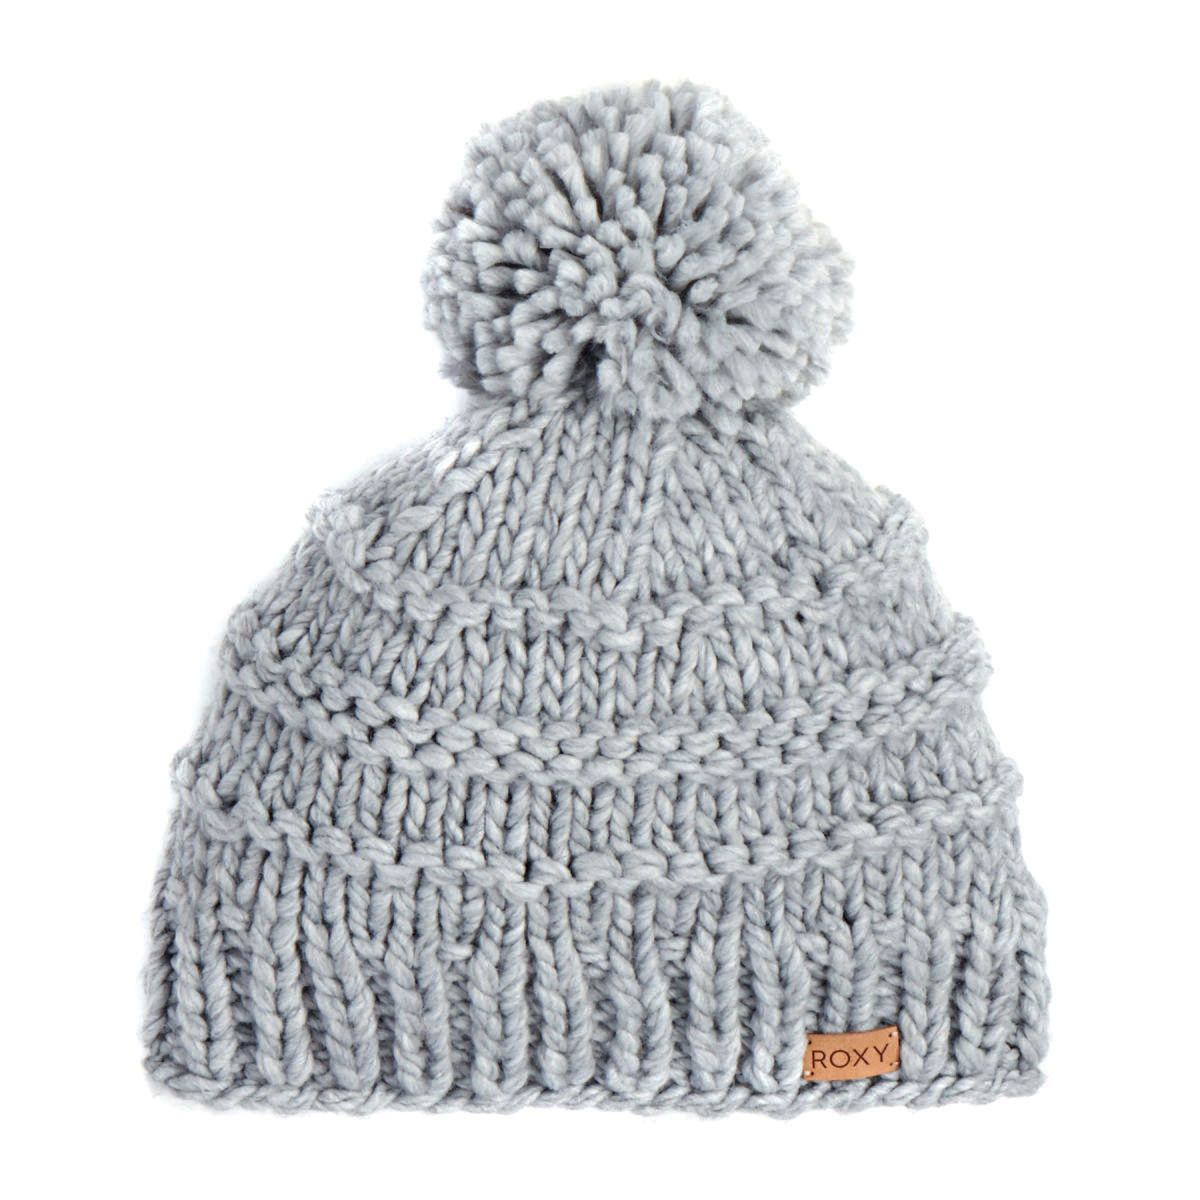 Roxy Winter Beanie | Lovely knitted things | Pinterest